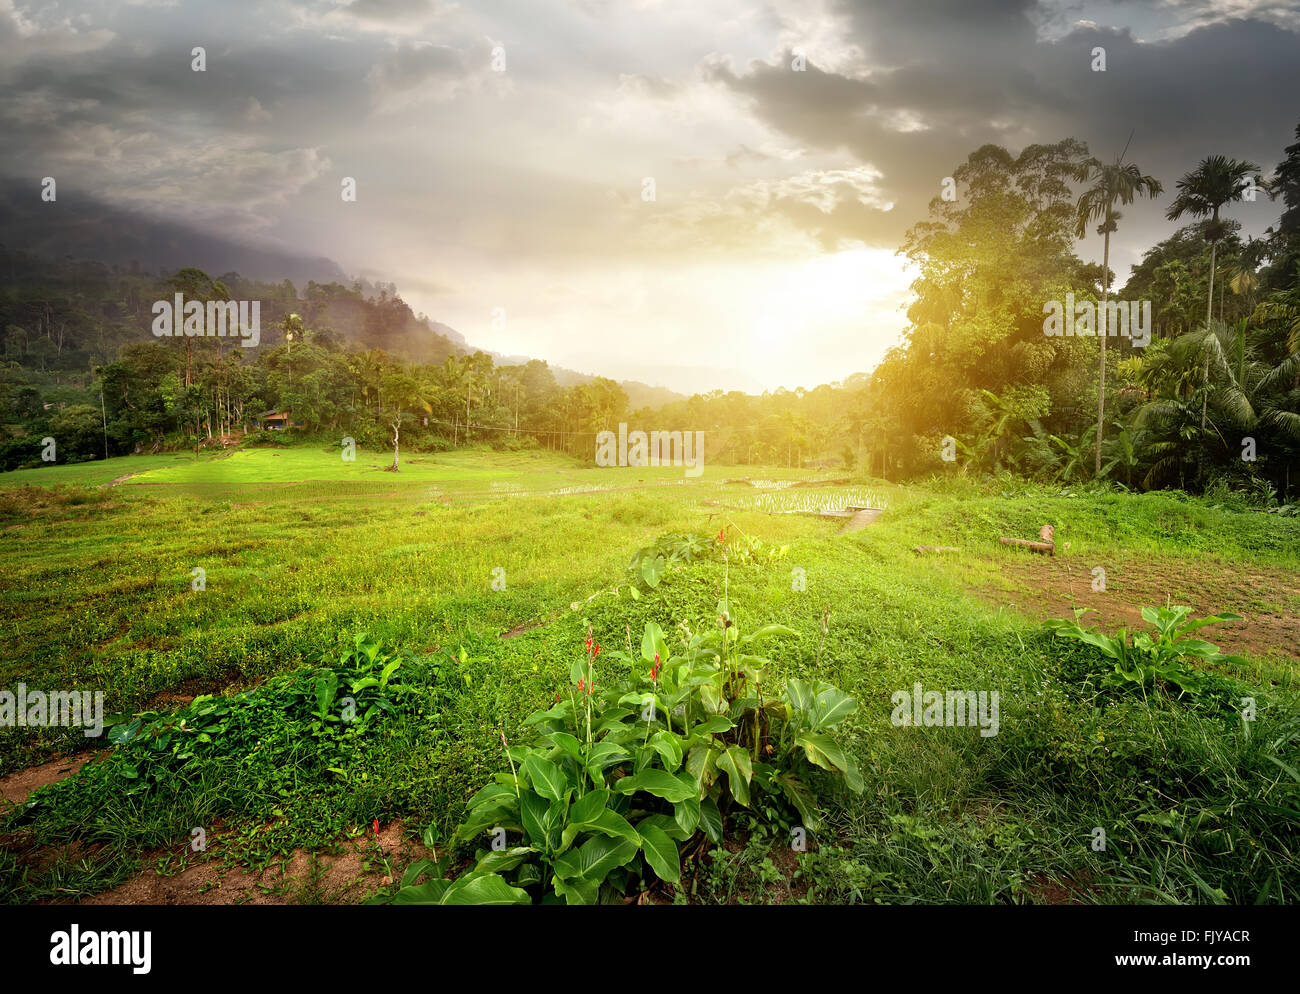 Field in jungles of Sri Lanka at cloudy sunset - Stock Image